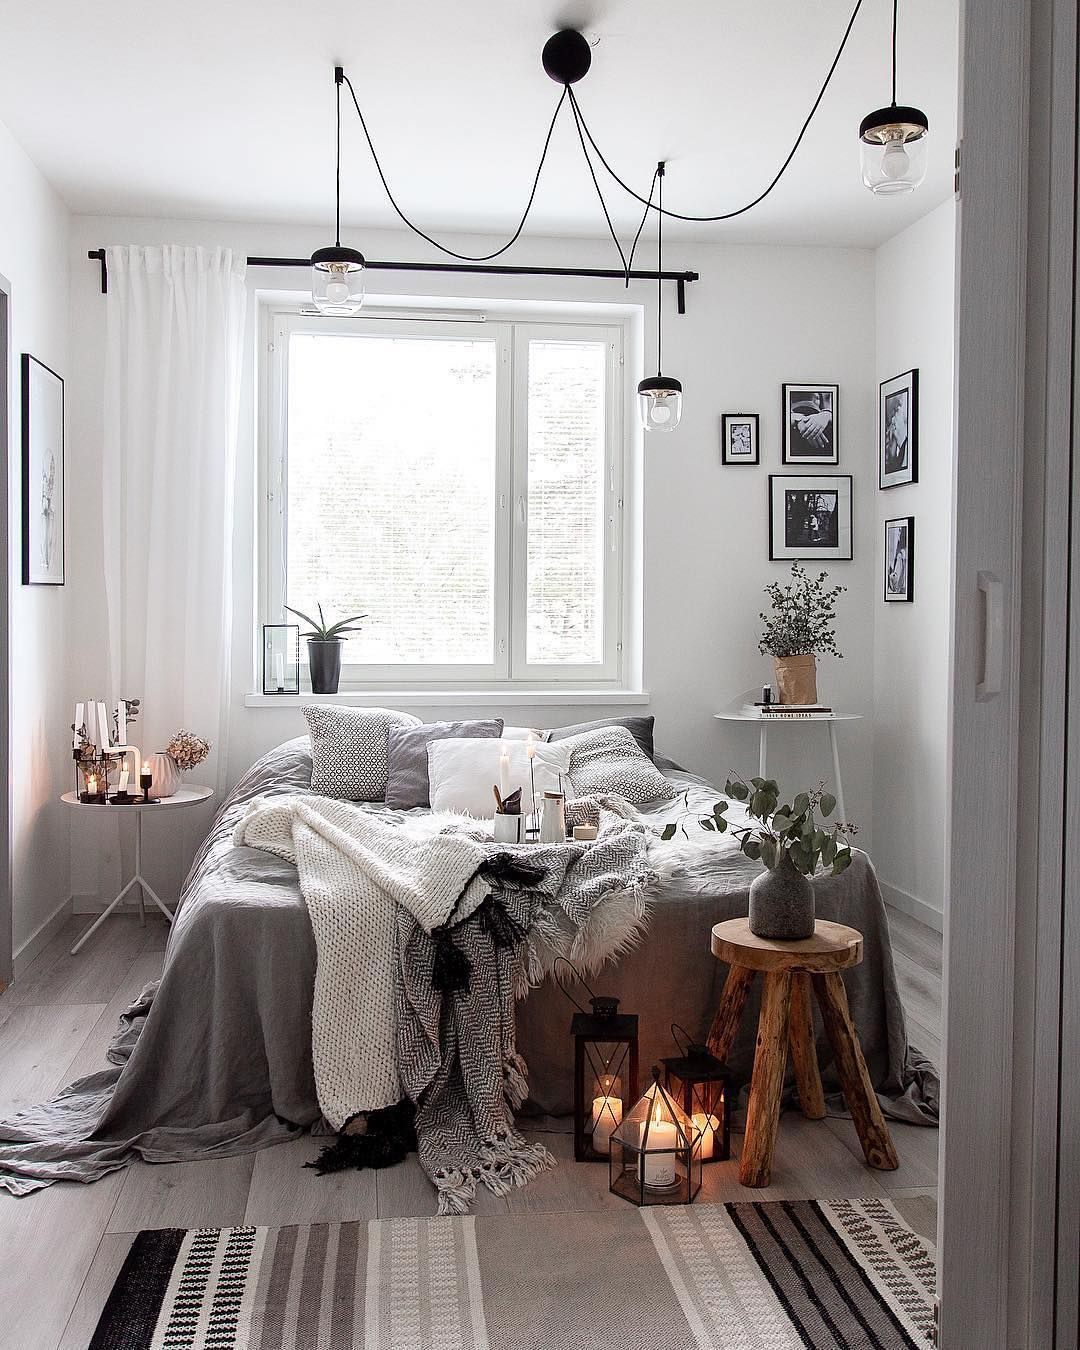 What Do You Think Of This Cozy Scandinavian Bedroom We Love 2xilo S Choice Of Boho Style Decor Pieces For Her Char Bedroom Design Bedroom Interior Home Decor